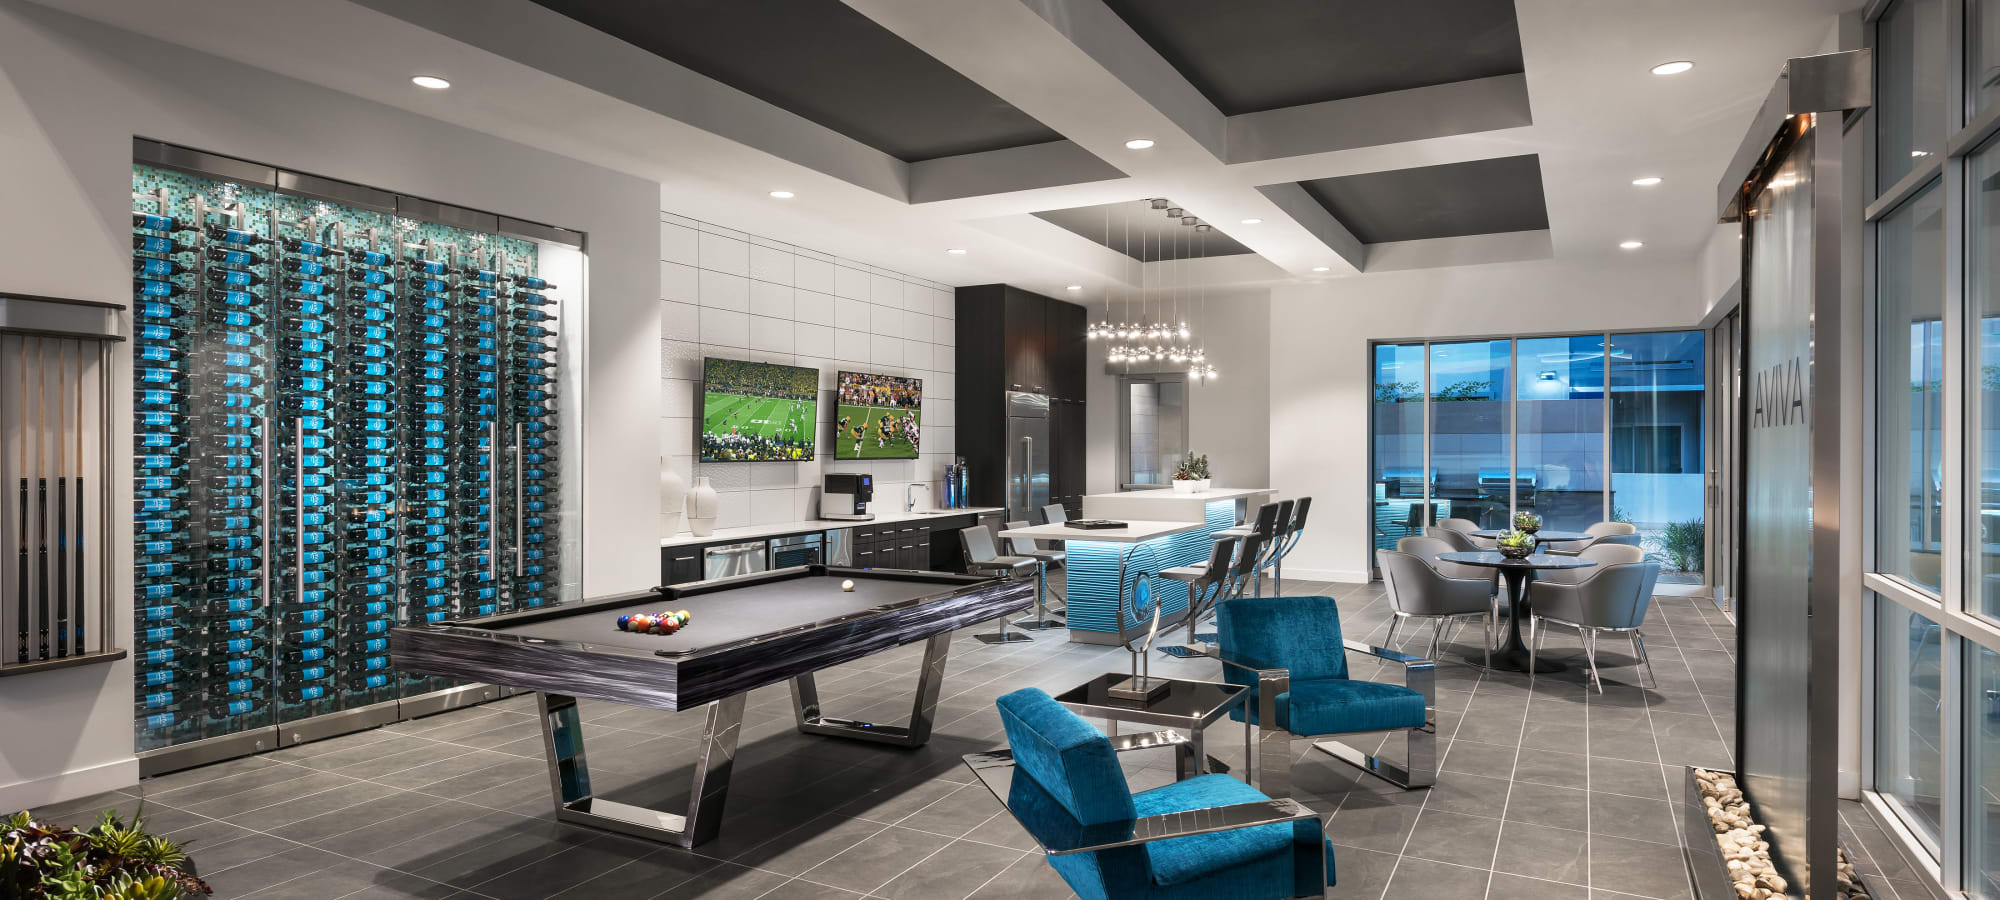 Clubhouse pool table and indoor waterfall at Aviva in Mesa, Arizona